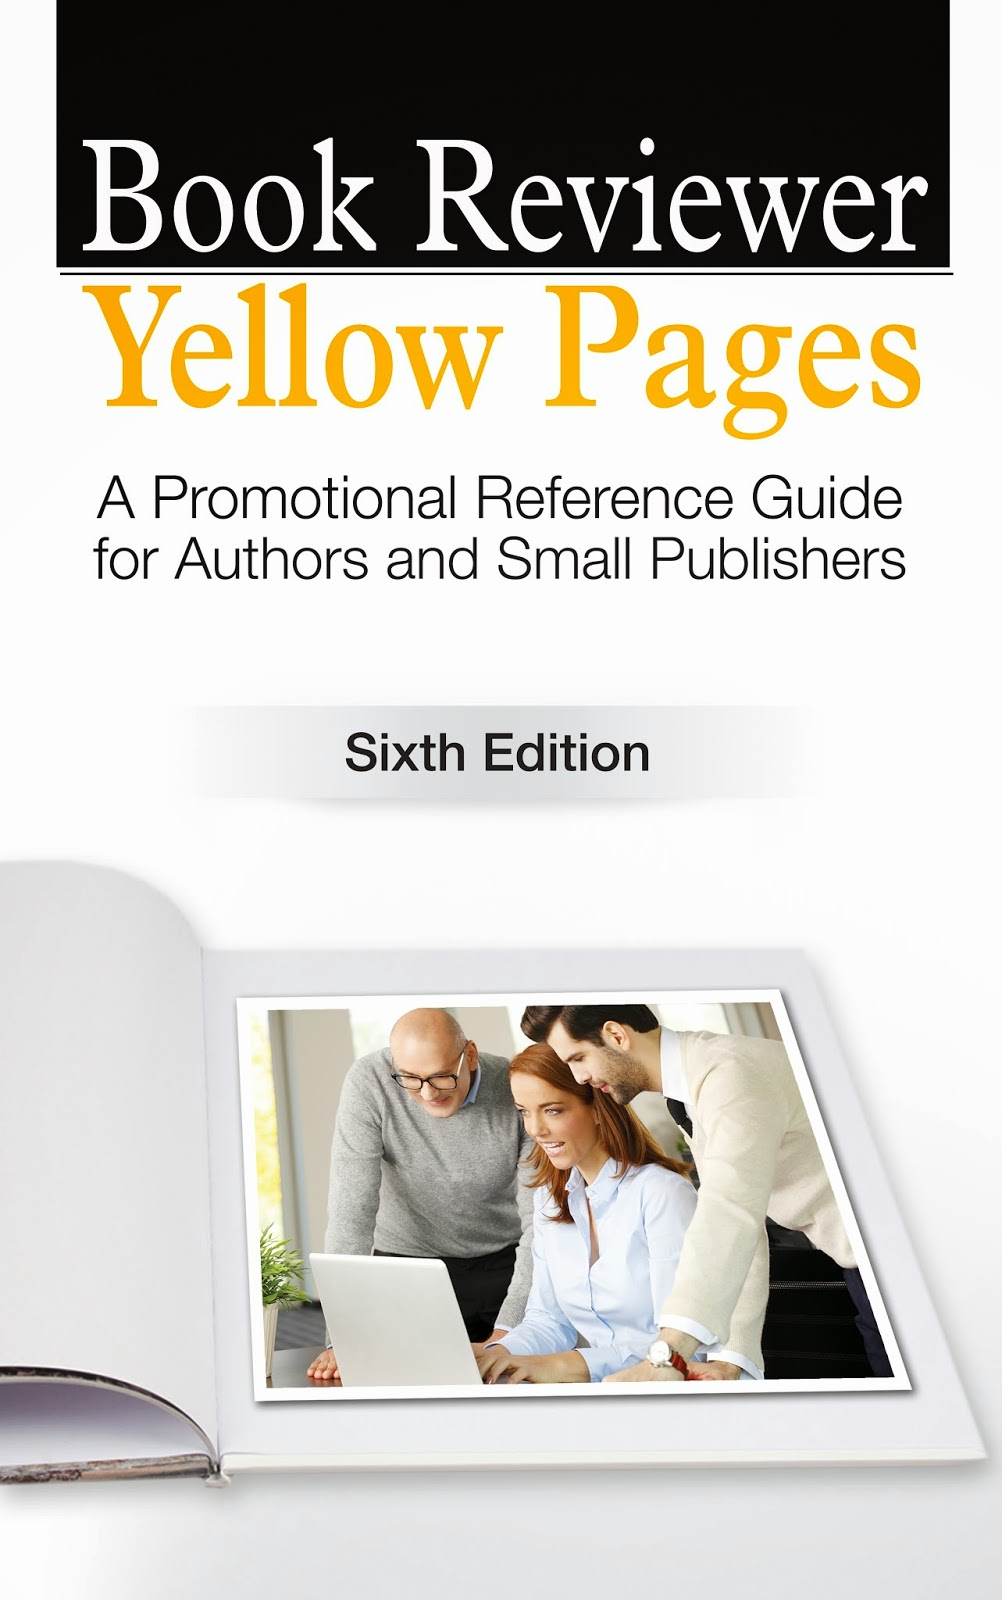 Book-Reviewer-Yellow-Pages